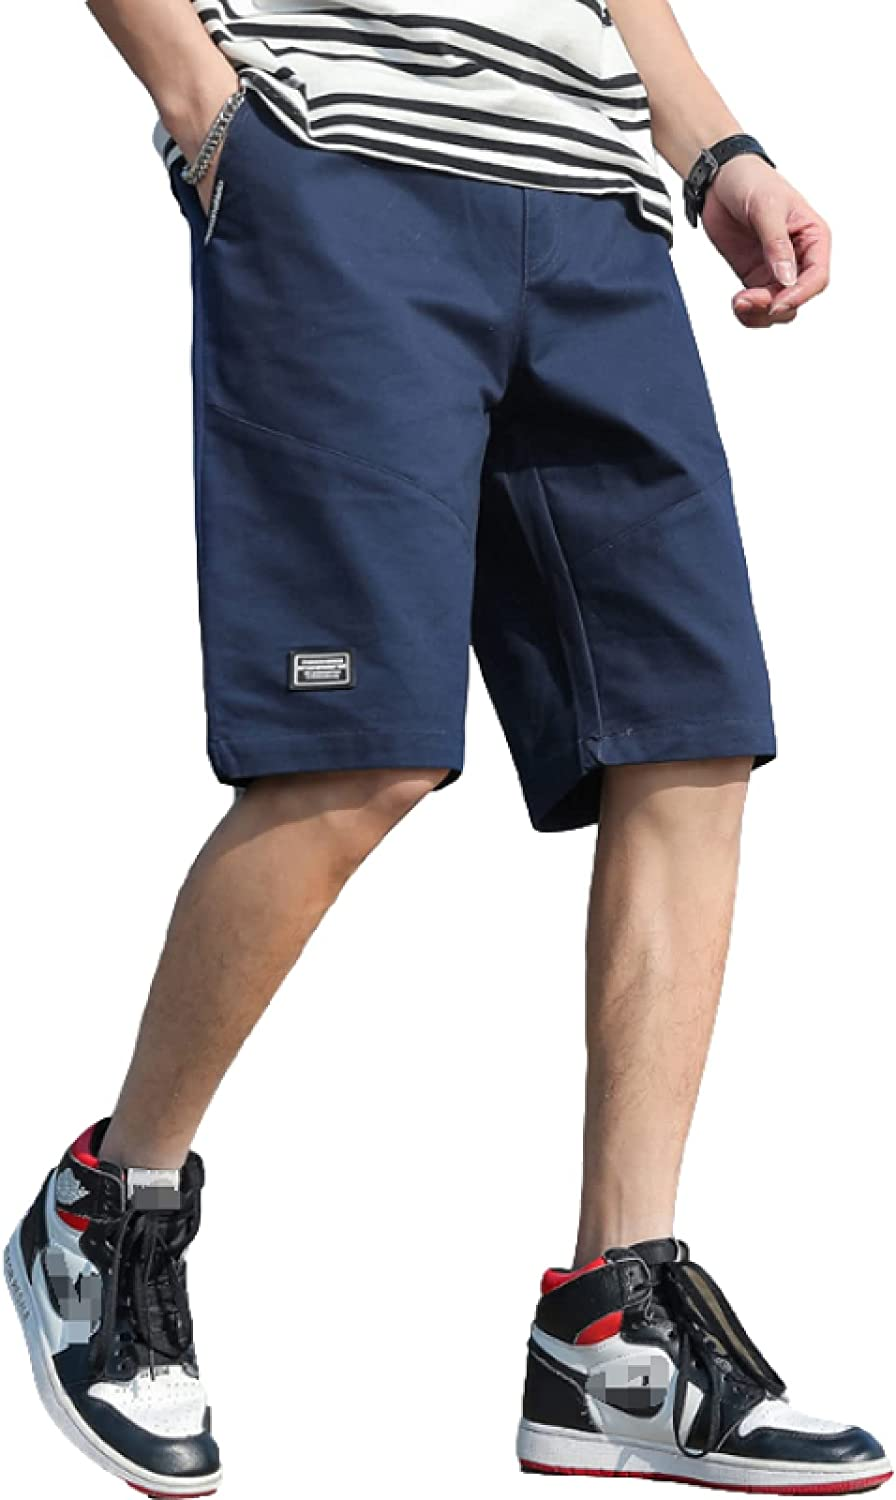 Popular shop is the lowest price challenge Segindy Men's Summer Thin Shorts Trend quality assurance Comfortabl Casual Fashion